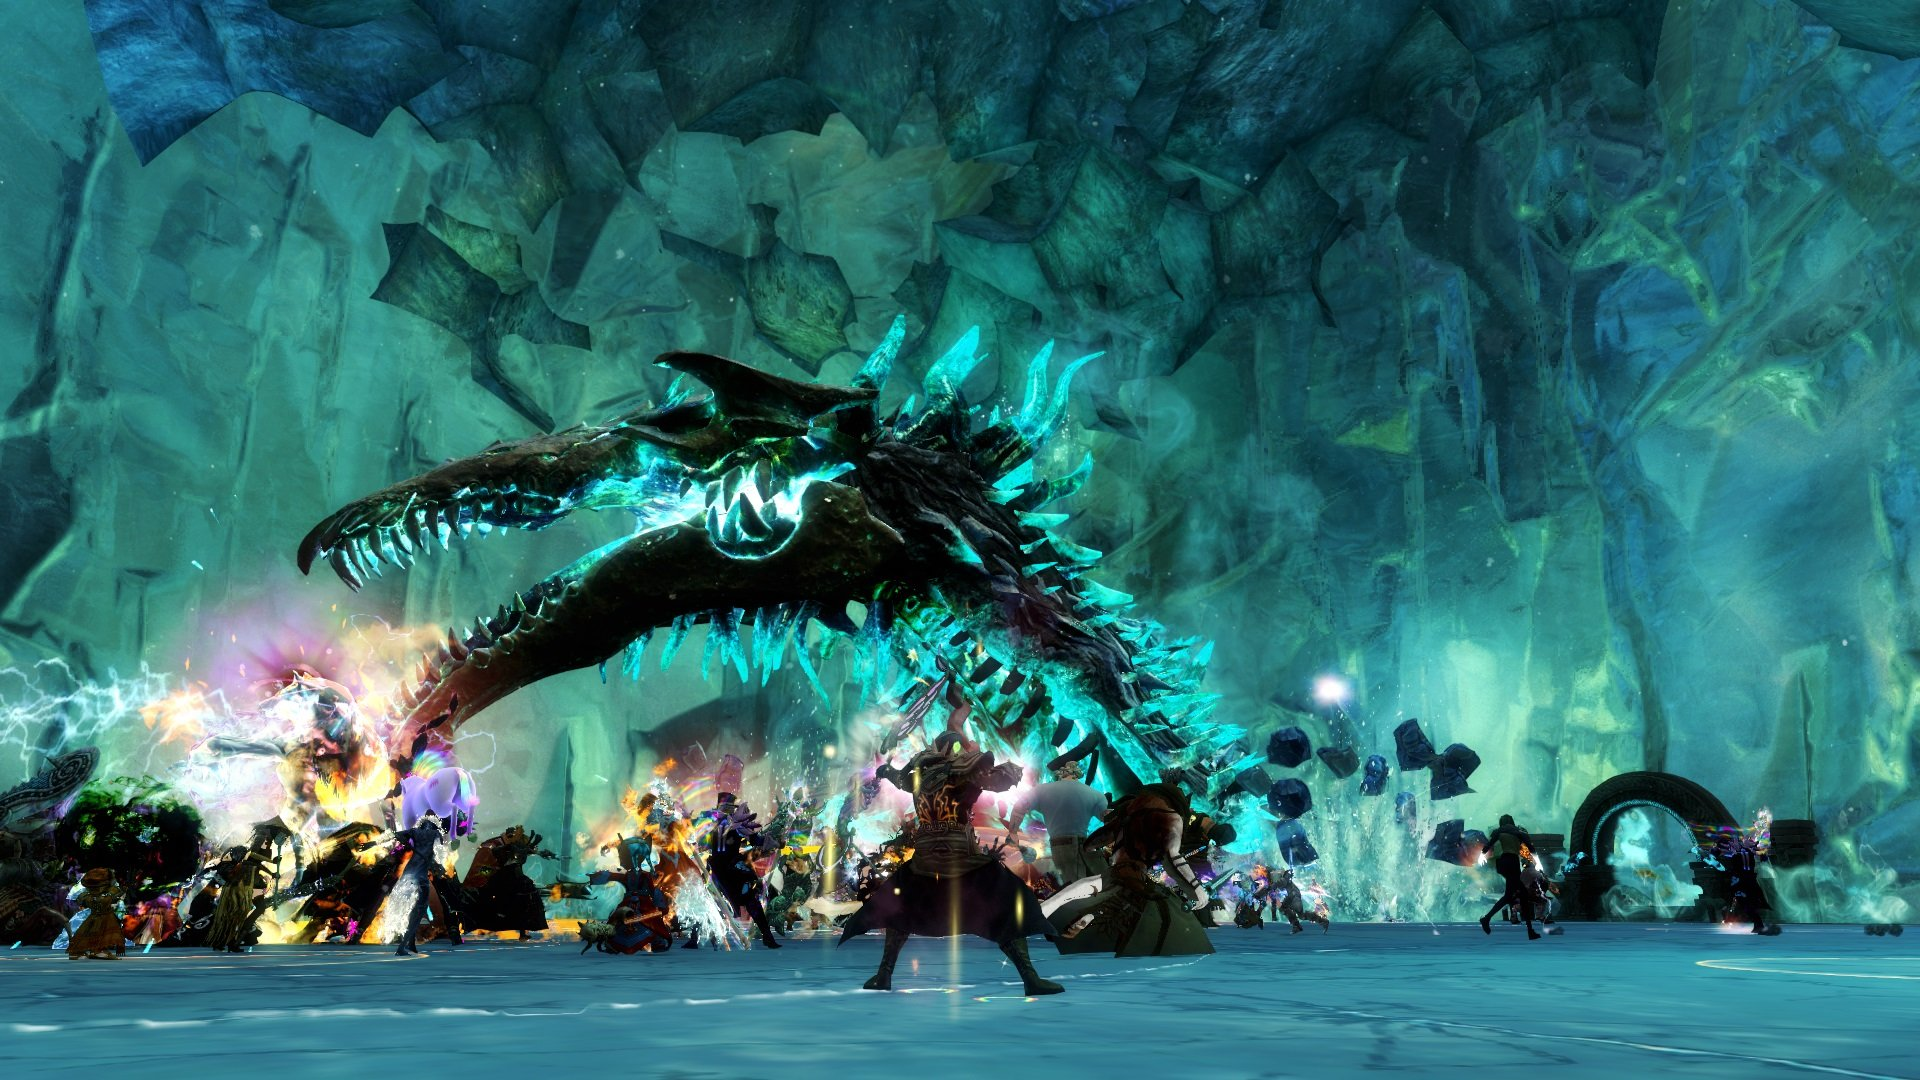 gw2 the icebrood saga Shadow in the Ice Drakkar